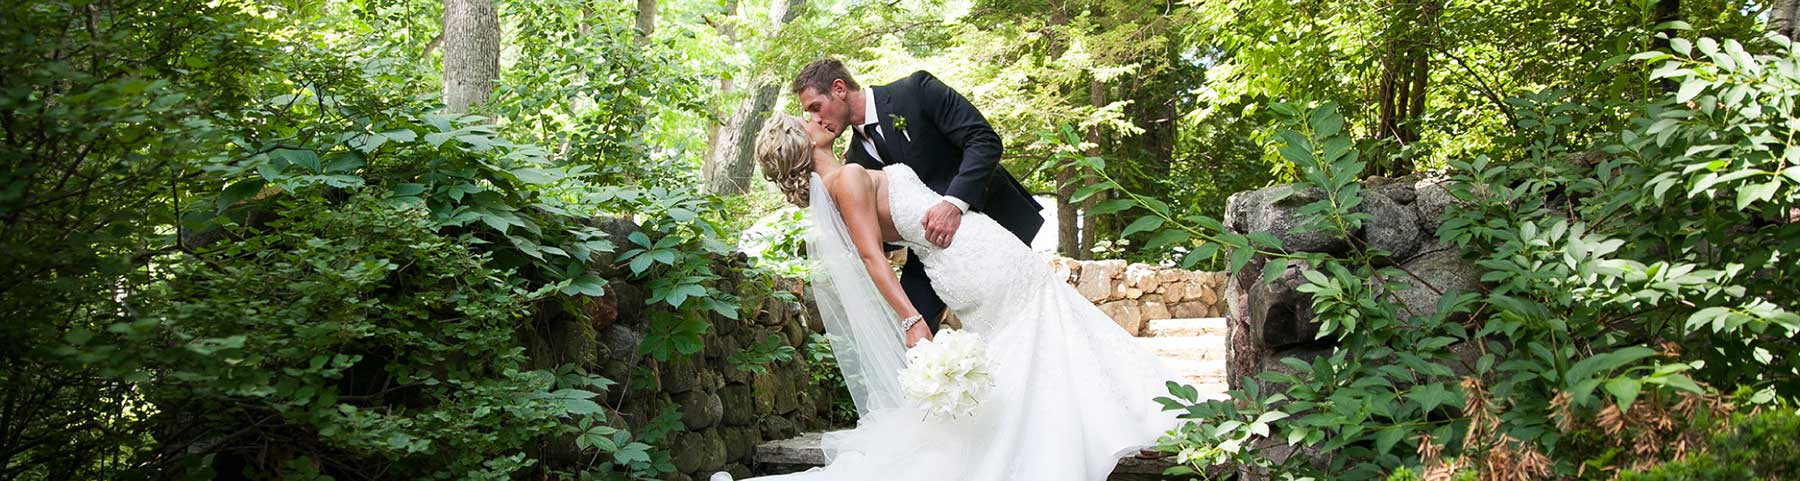 wisconsin weddings, green lake wi, heidel house resort & spa